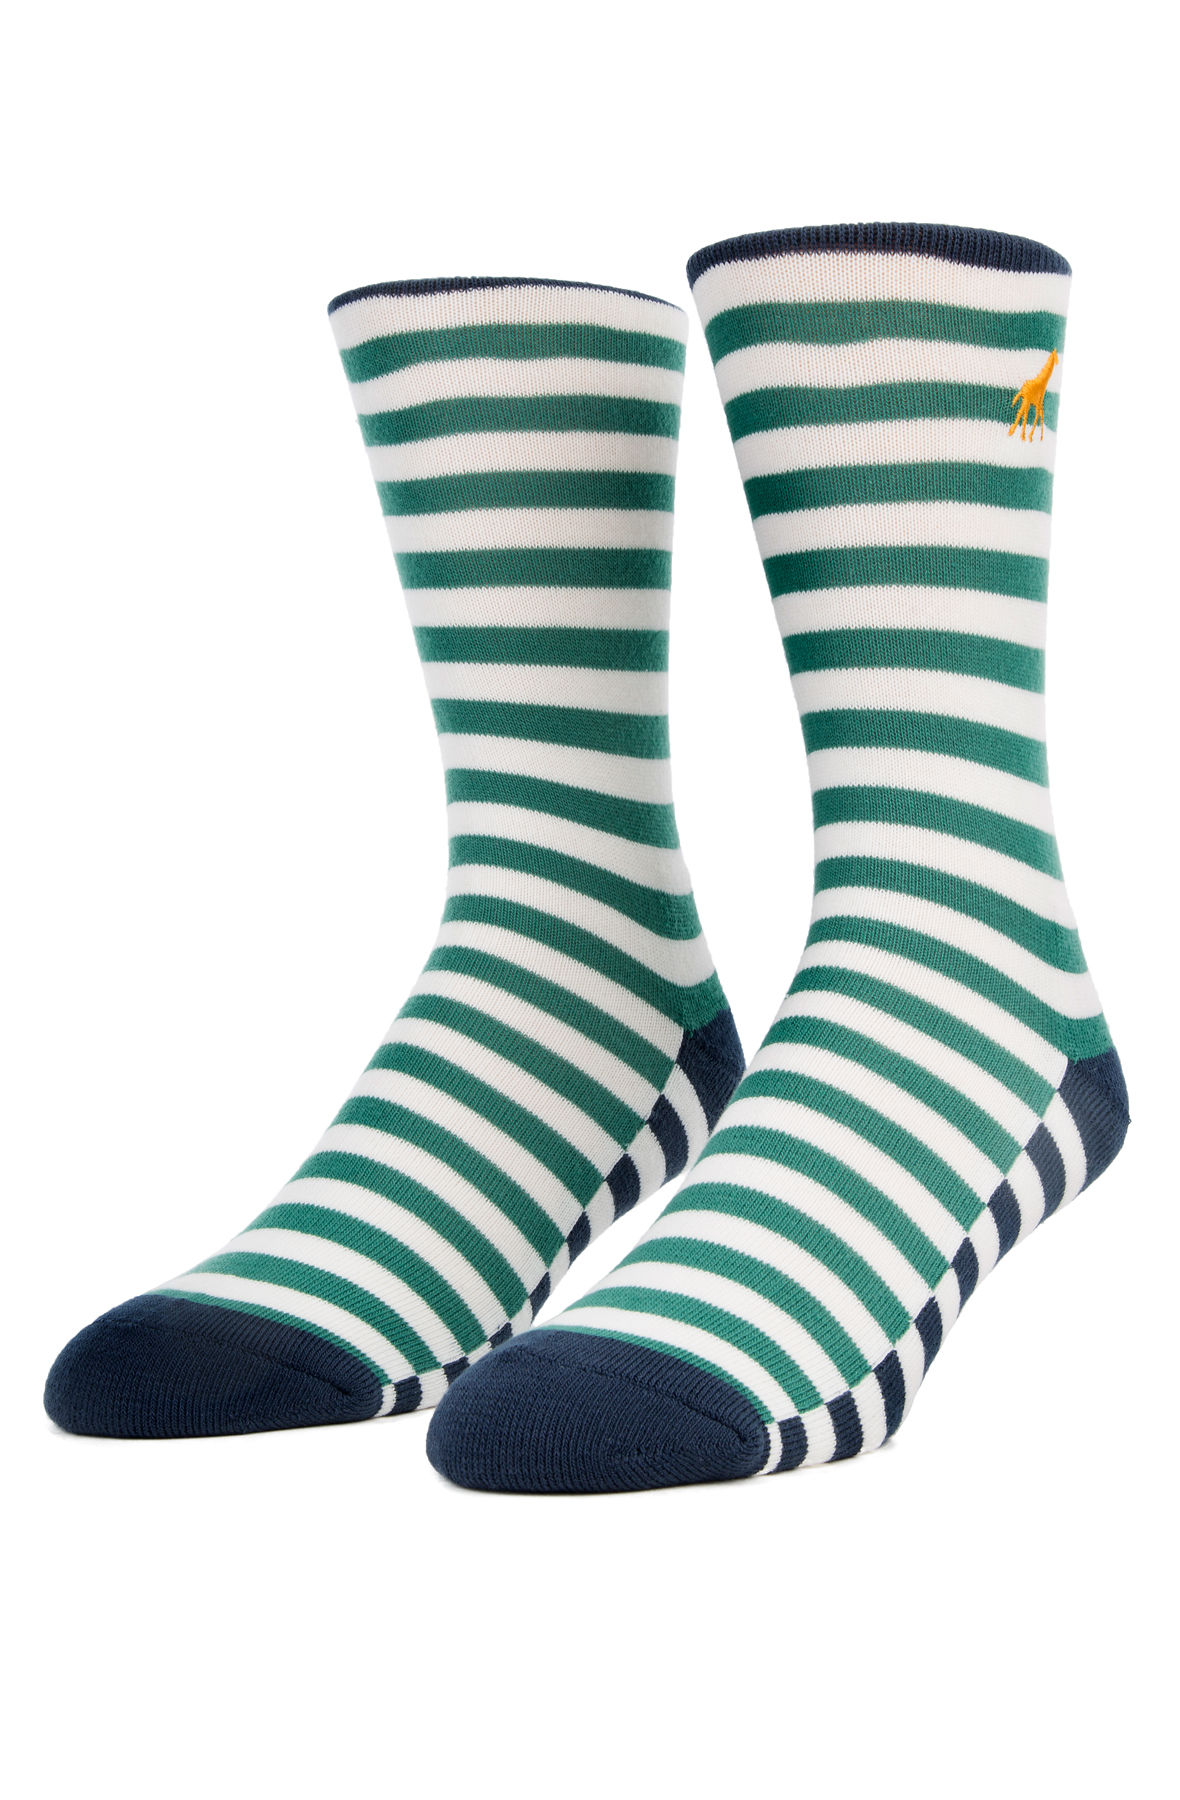 Image of The LRGeneration Green Striped socks